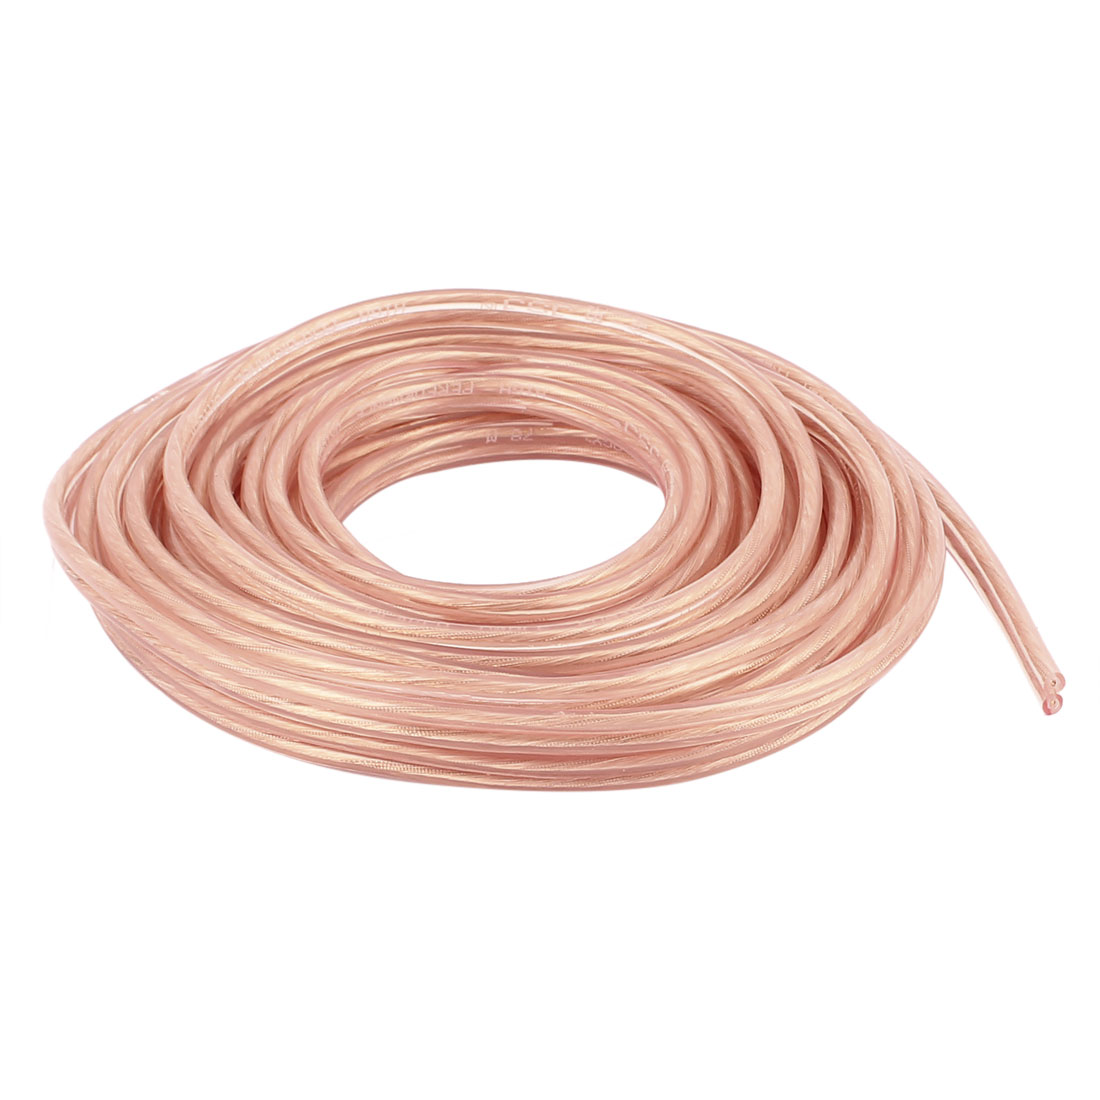 5 Meter 16 Ft Speaker 100 Copper Wire Core Cable Cord Coil